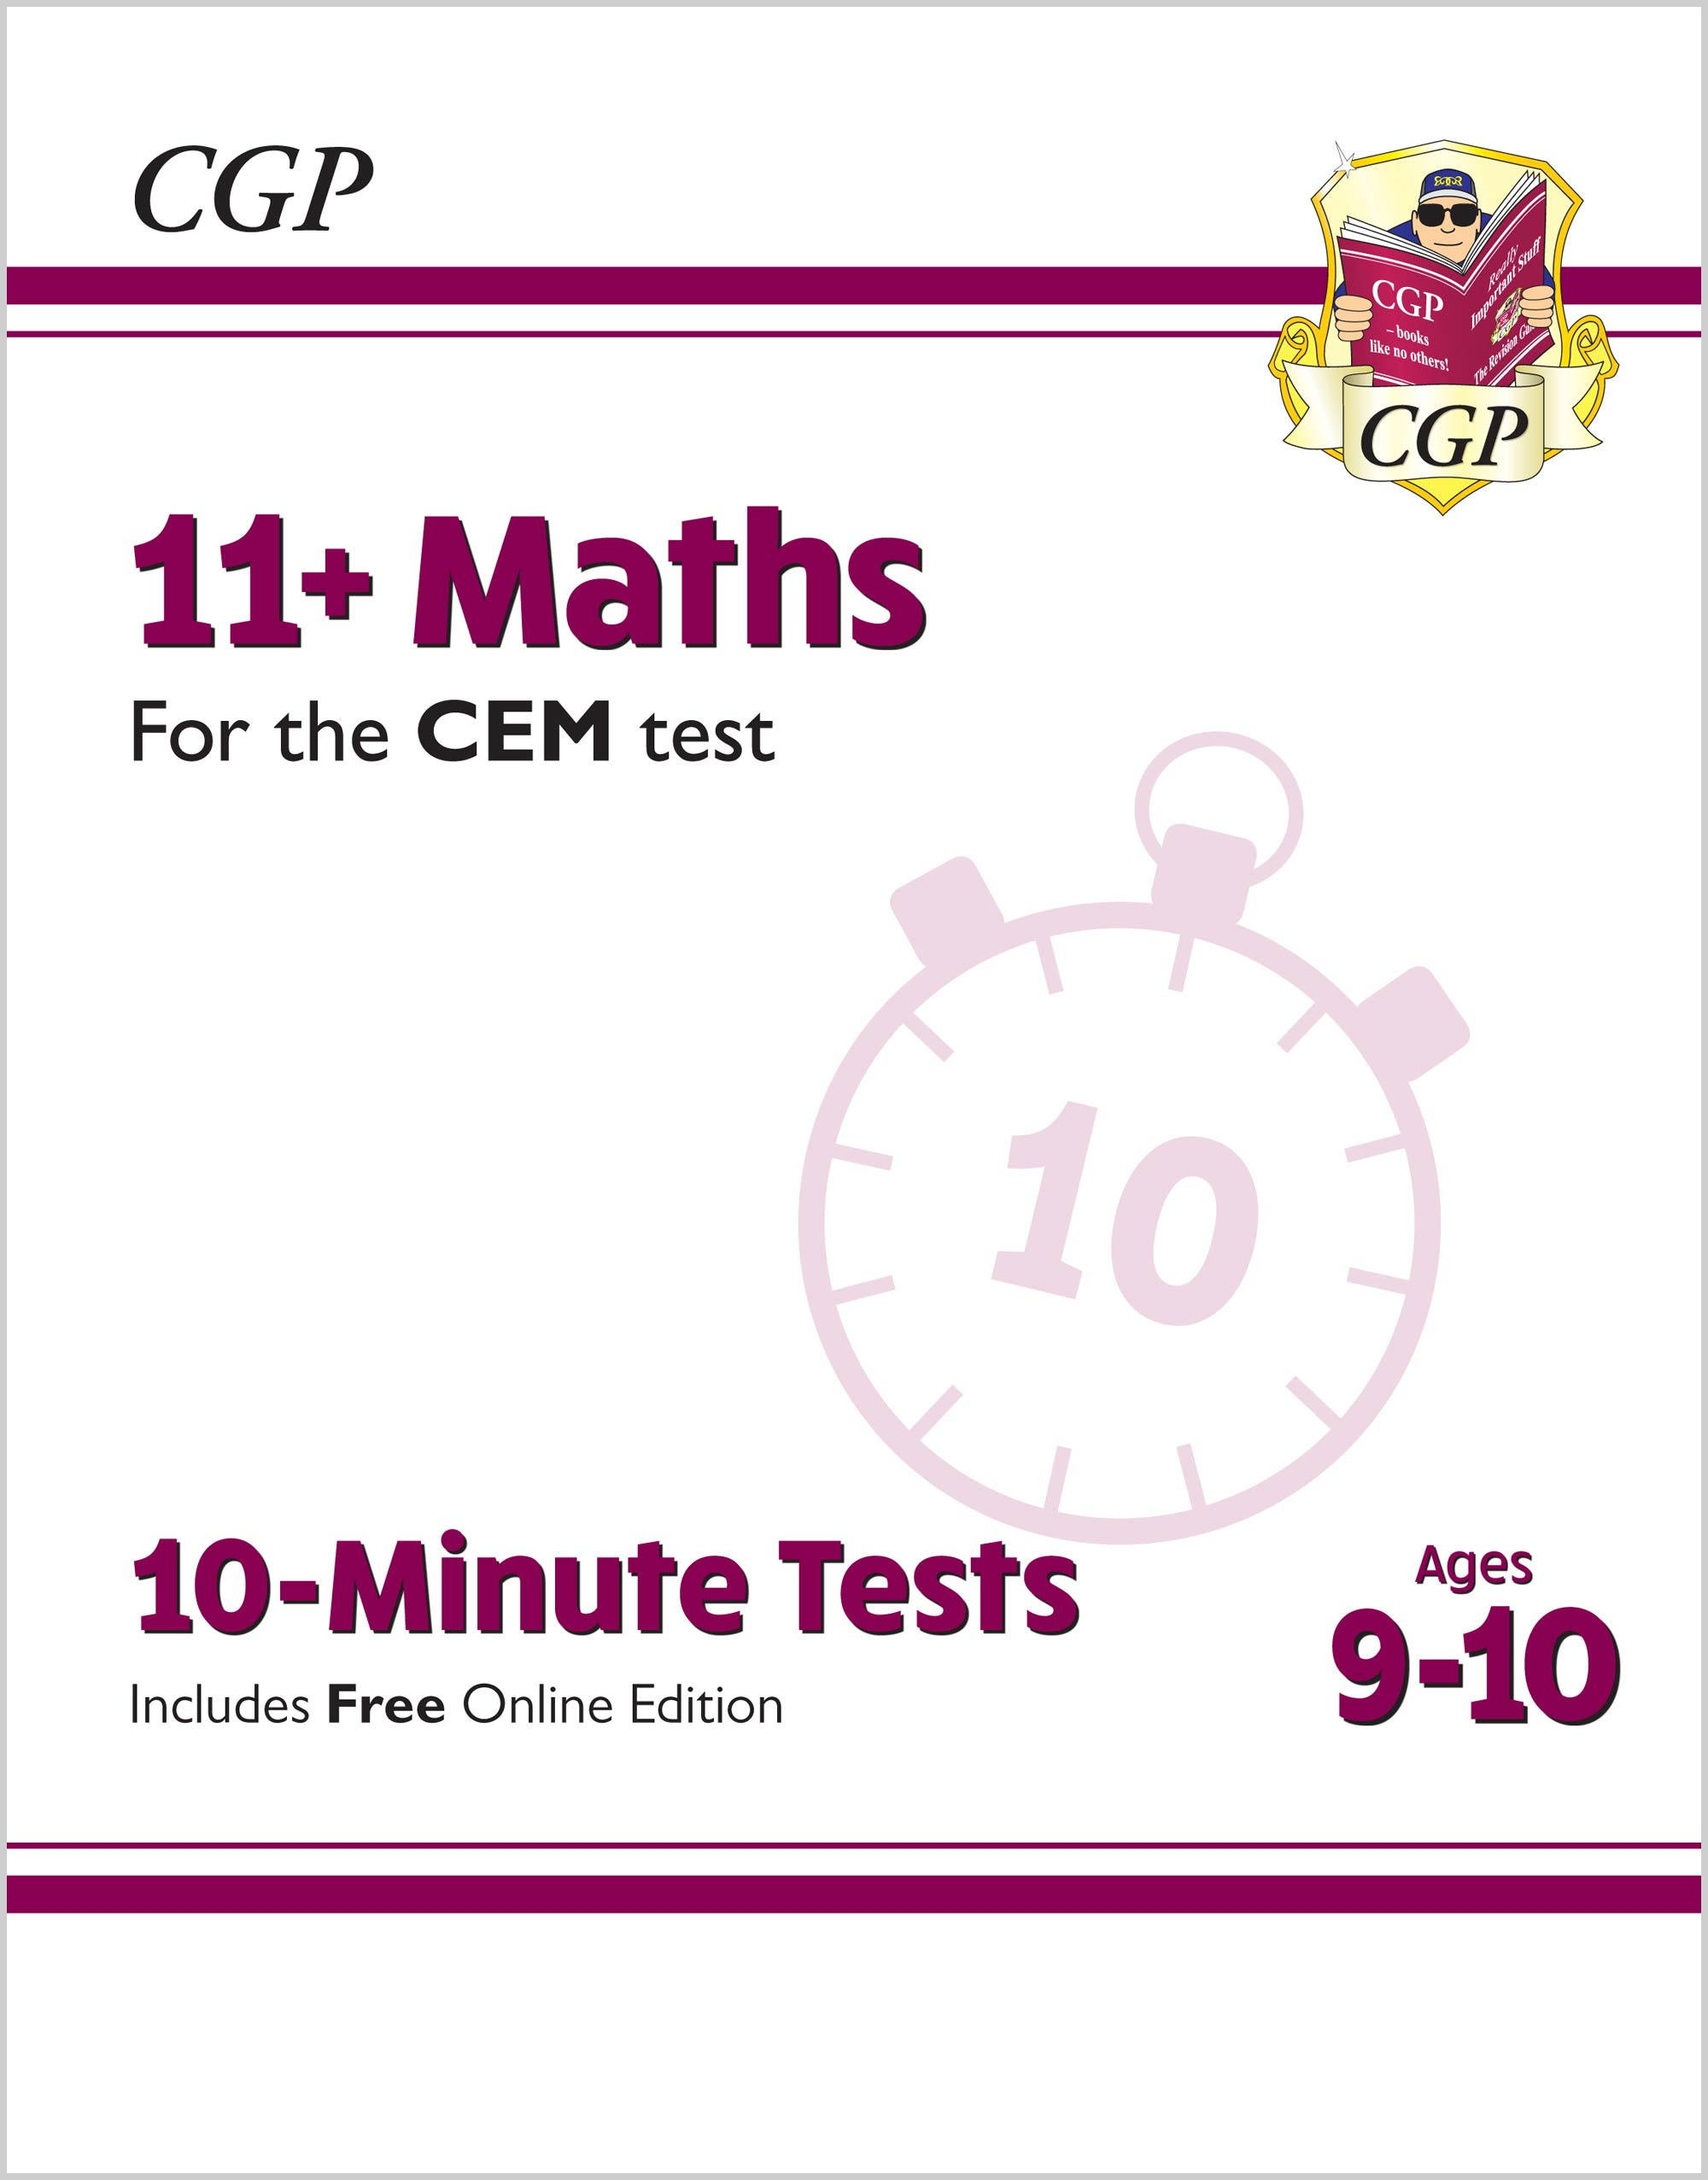 M5XPDE2 - 11+ CEM 10-Minute Tests: Maths - Ages 9-10 (with Online Edition)